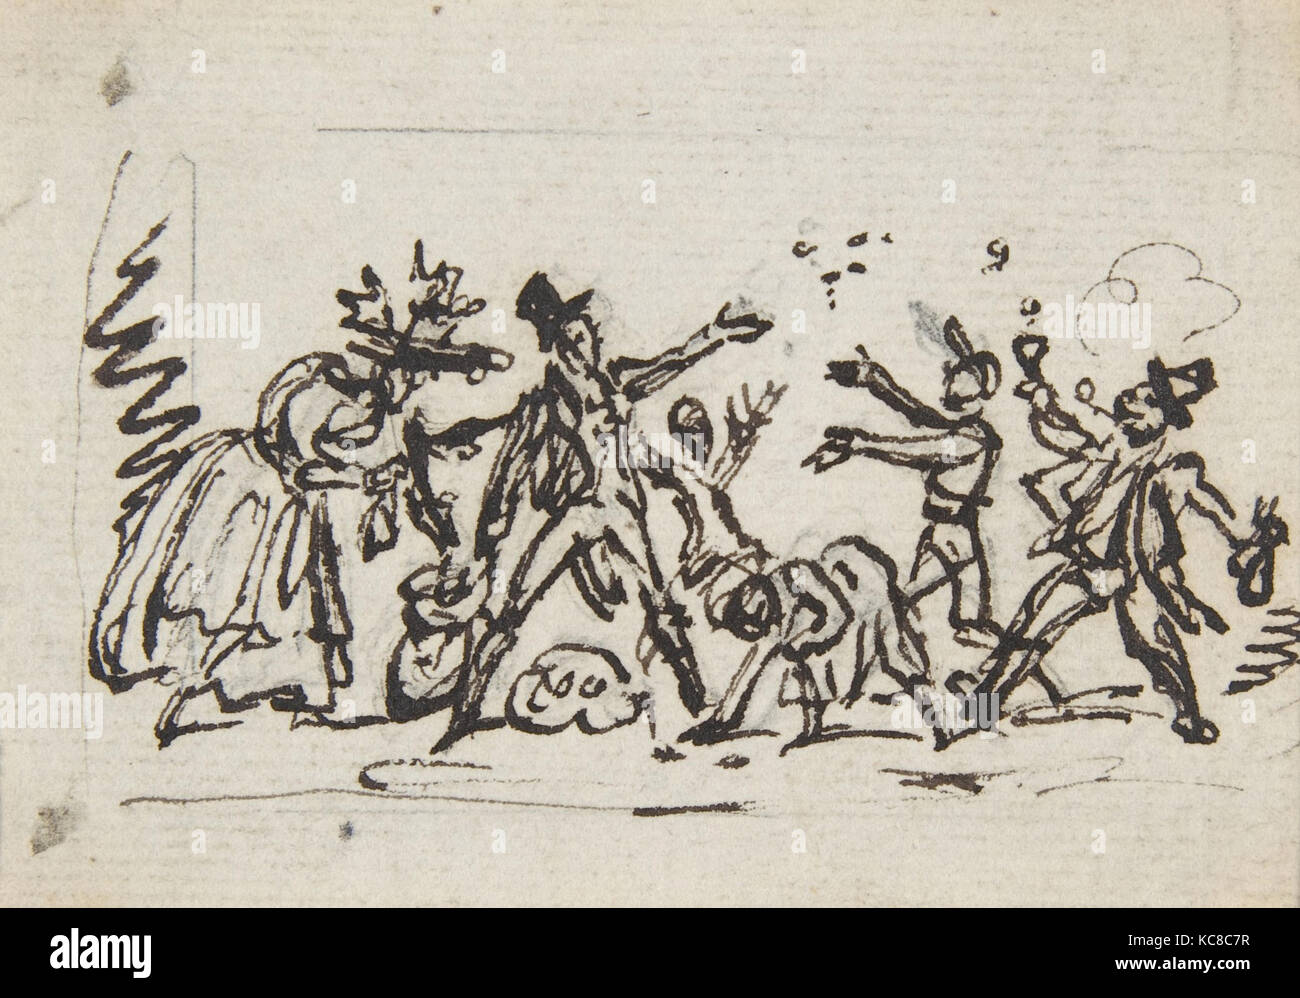 A Group of Figures, ca. 1850, Pen and brown ink over graphite, Overall: 3 1/16 x 3 7/8 in. (7.8 x 9.9 cm), Drawings, Stock Photo